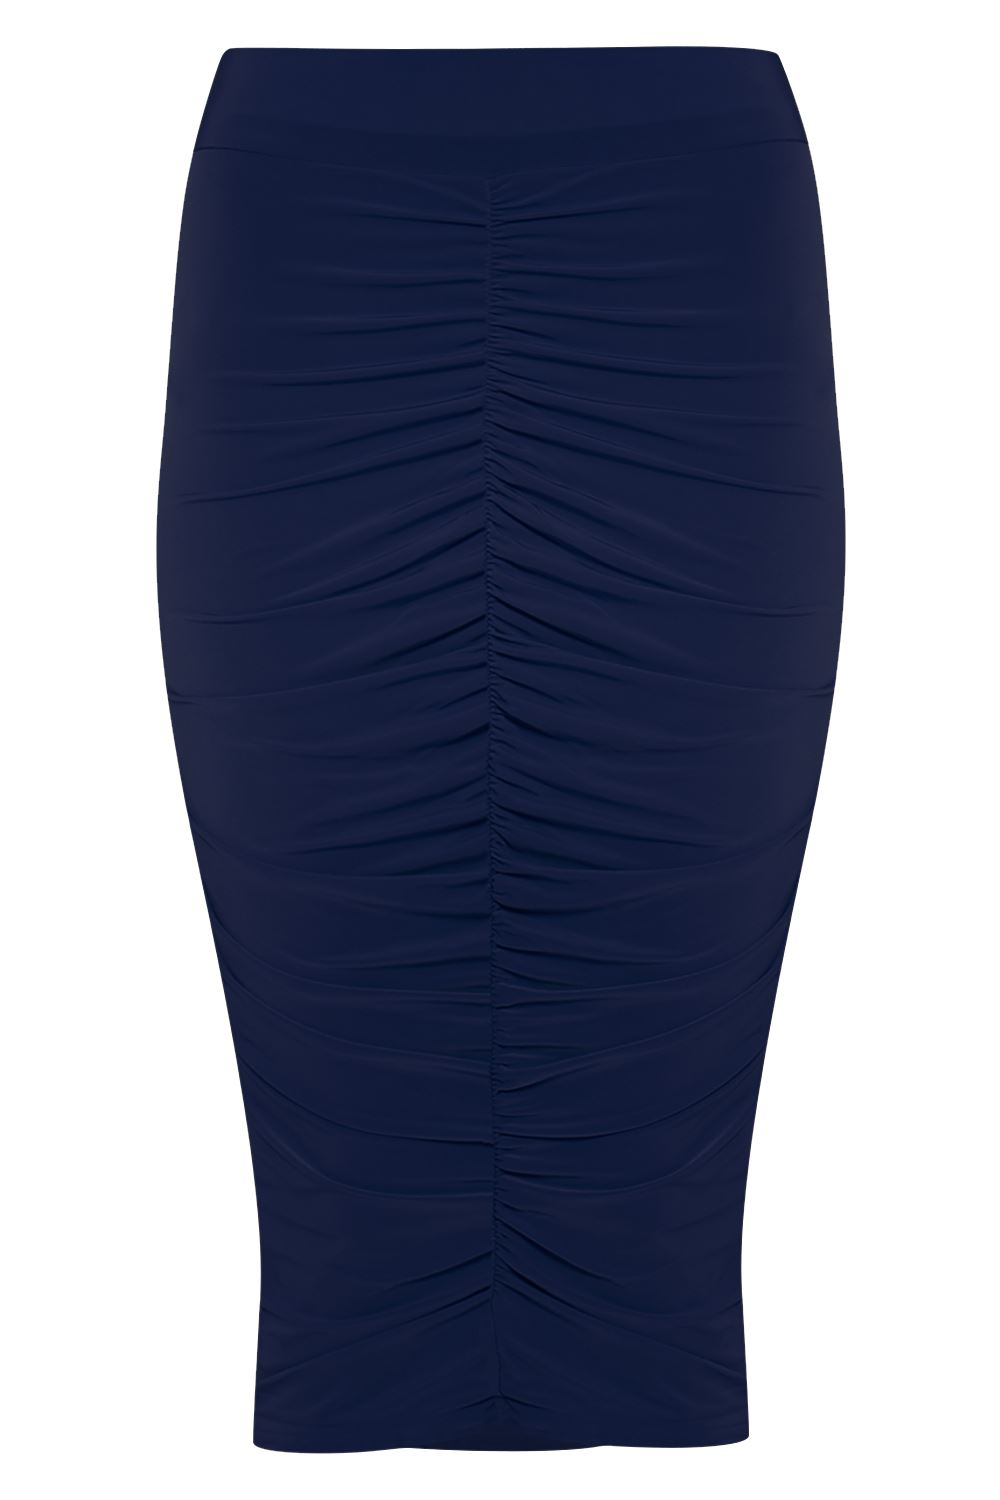 new womens stretchy front ruched pencil